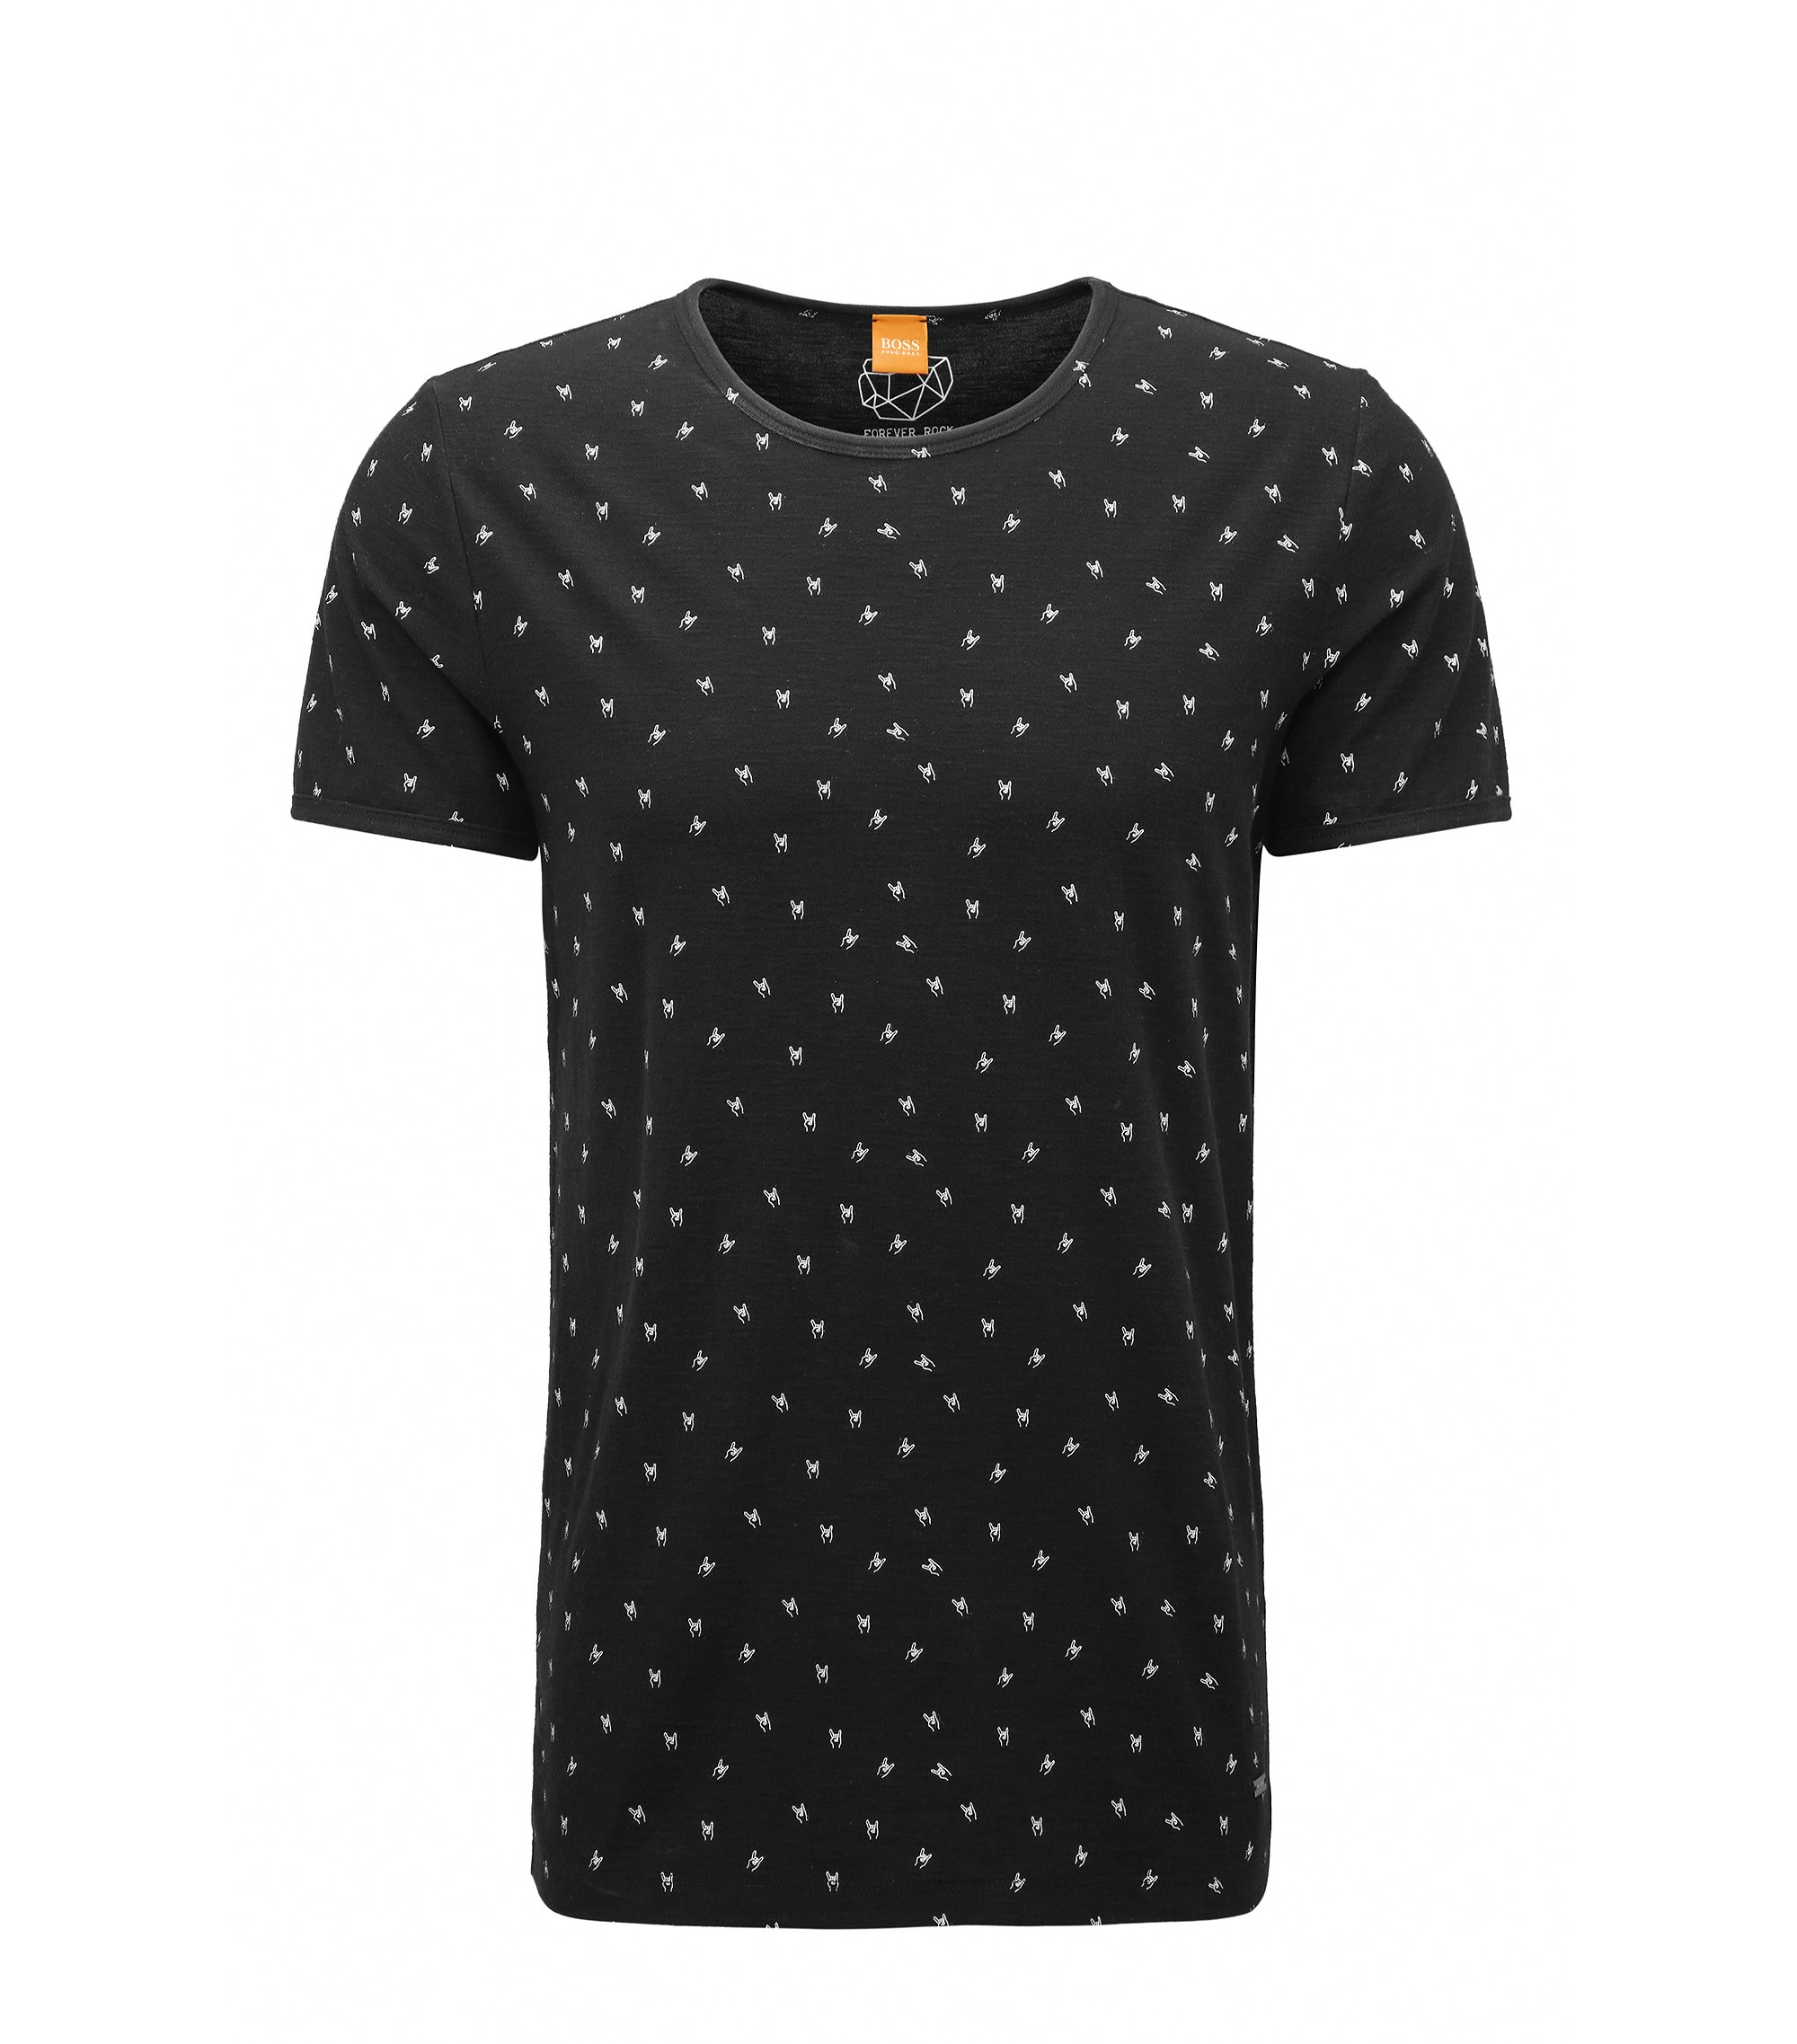 Printed Slub Jersey T-Shirt | Thoughts, Black